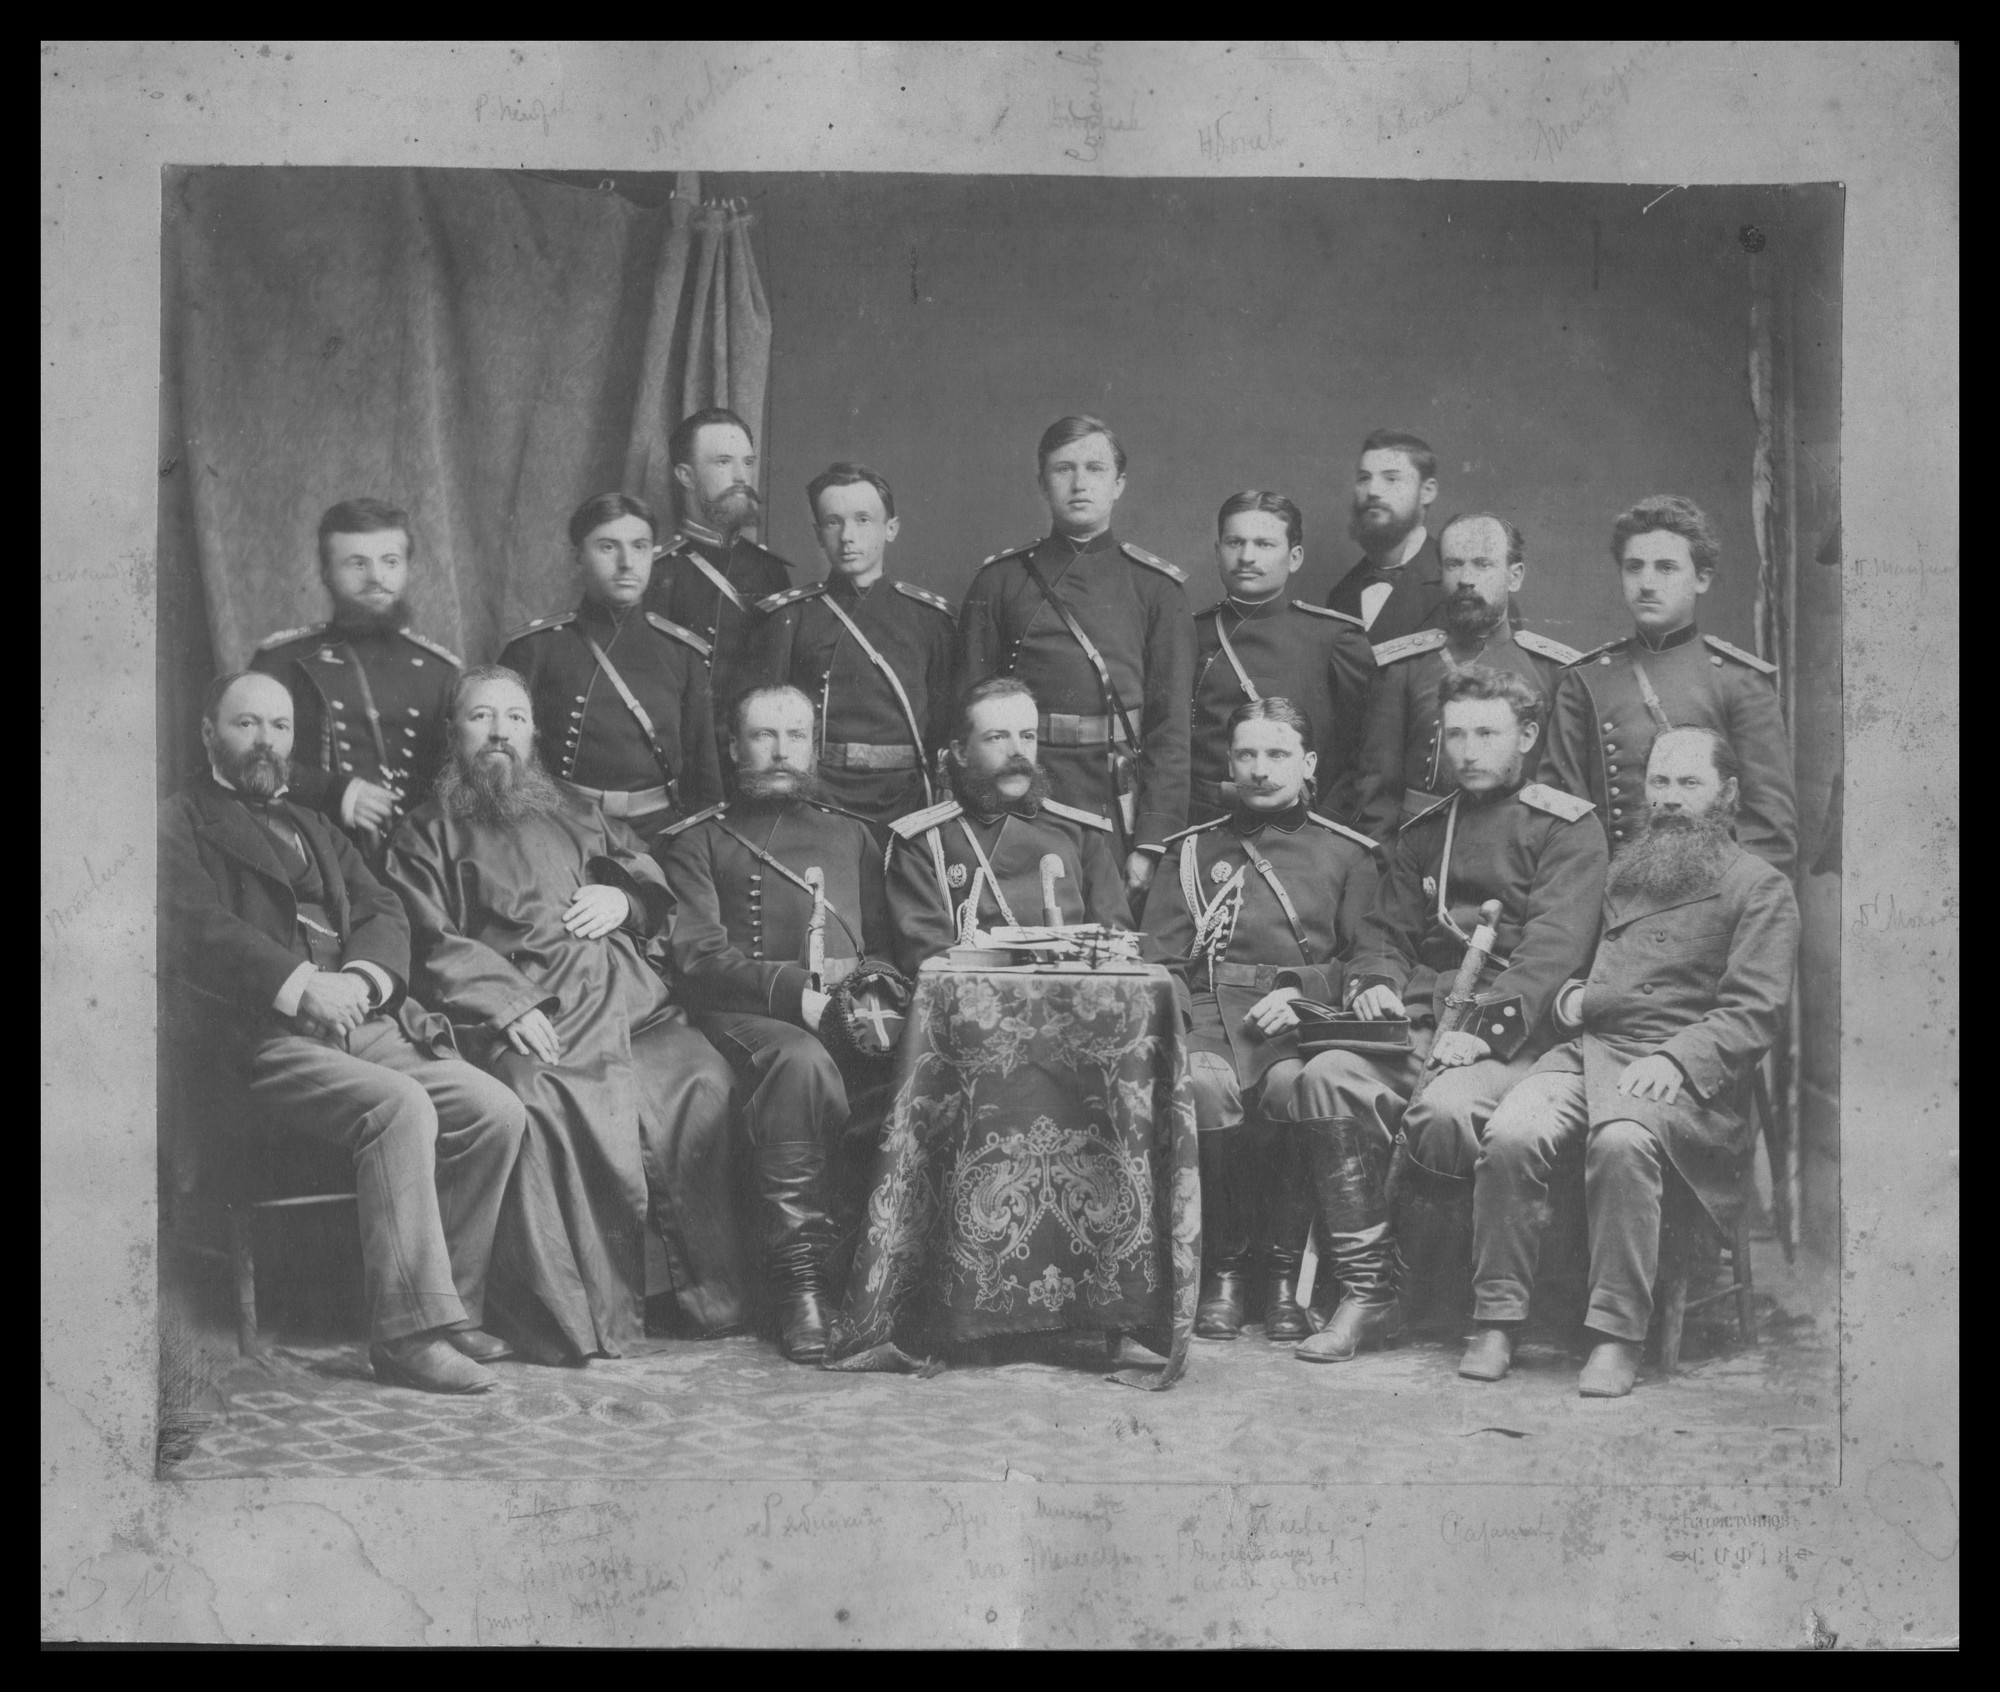 Russian officers and lecturers at the military school in Sofia, © National Museum of Military History Sofia